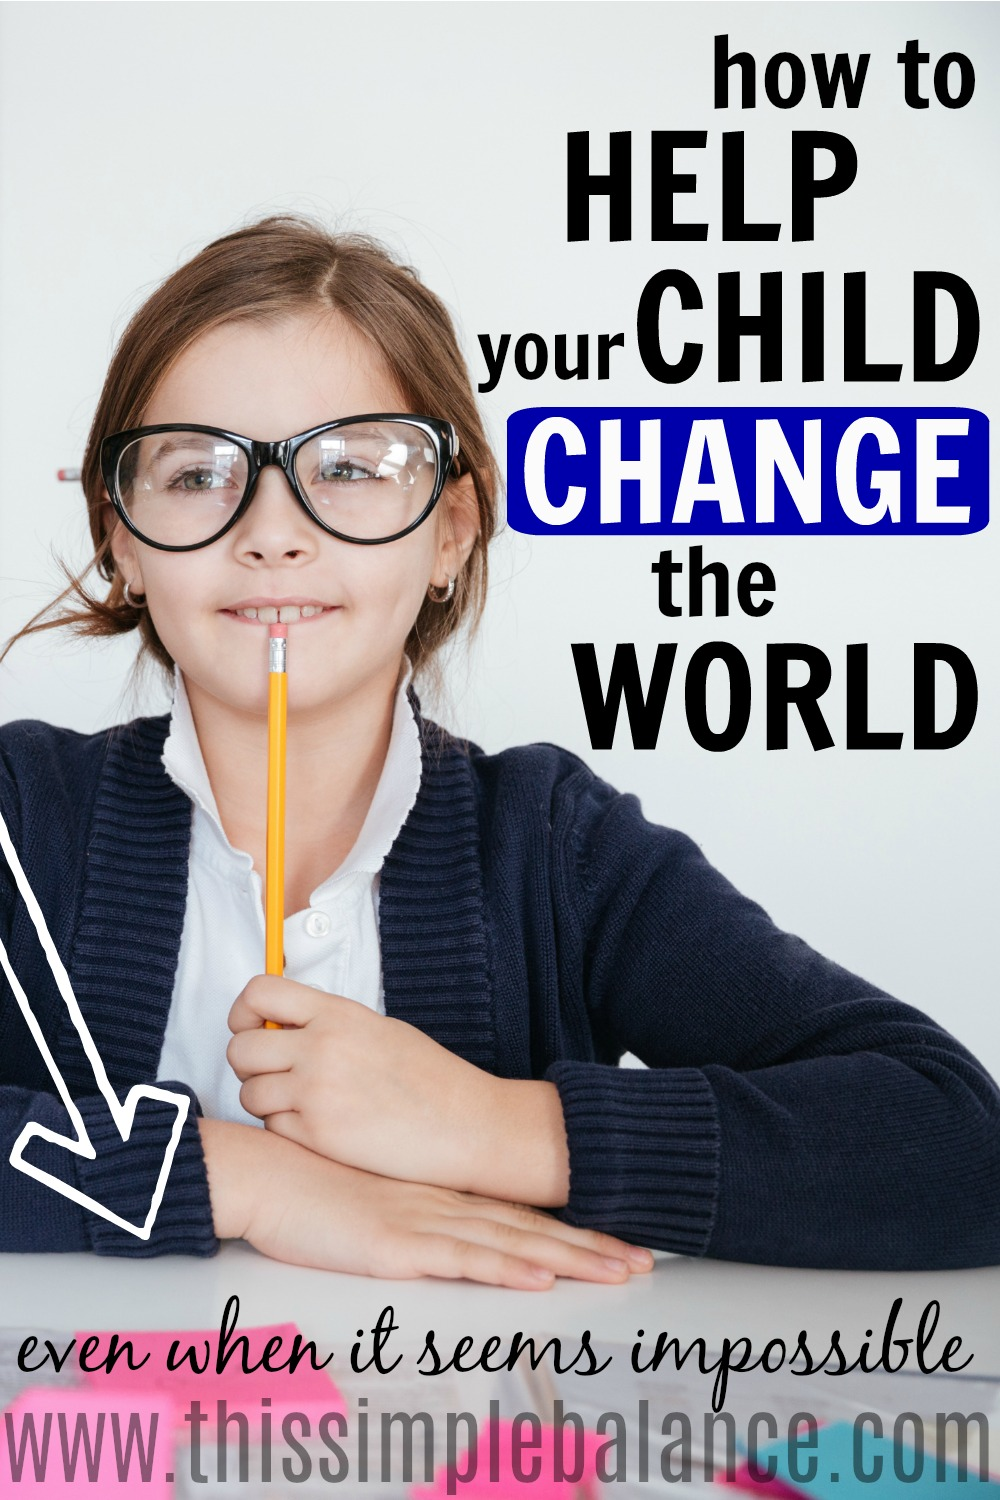 Has your child ever had a crazy idea for how she can change the world? Do you ever wonder as a parent how you can support her, even when the kind of change she's trying to make seems impossible (especially to our adult minds)? Get 4 simple tips on how to help your kids change the world, and help one specific child change the world, too! #parentingtips